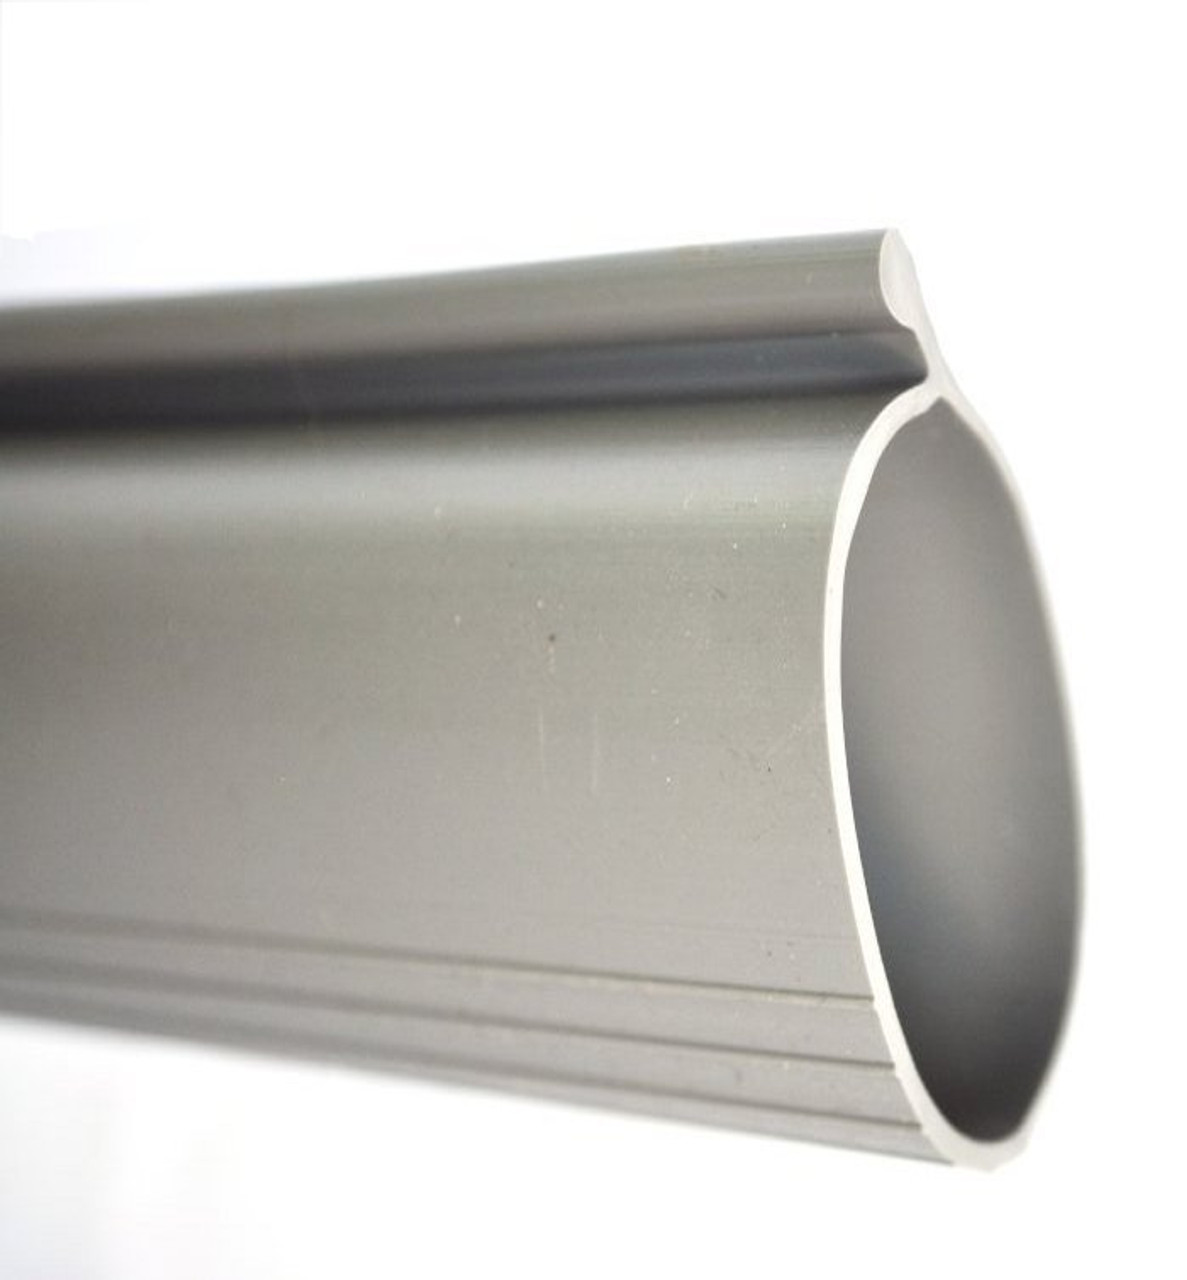 NEW Bottom Seal Bead Type Grey Vinyl Garage Door Weather Seal